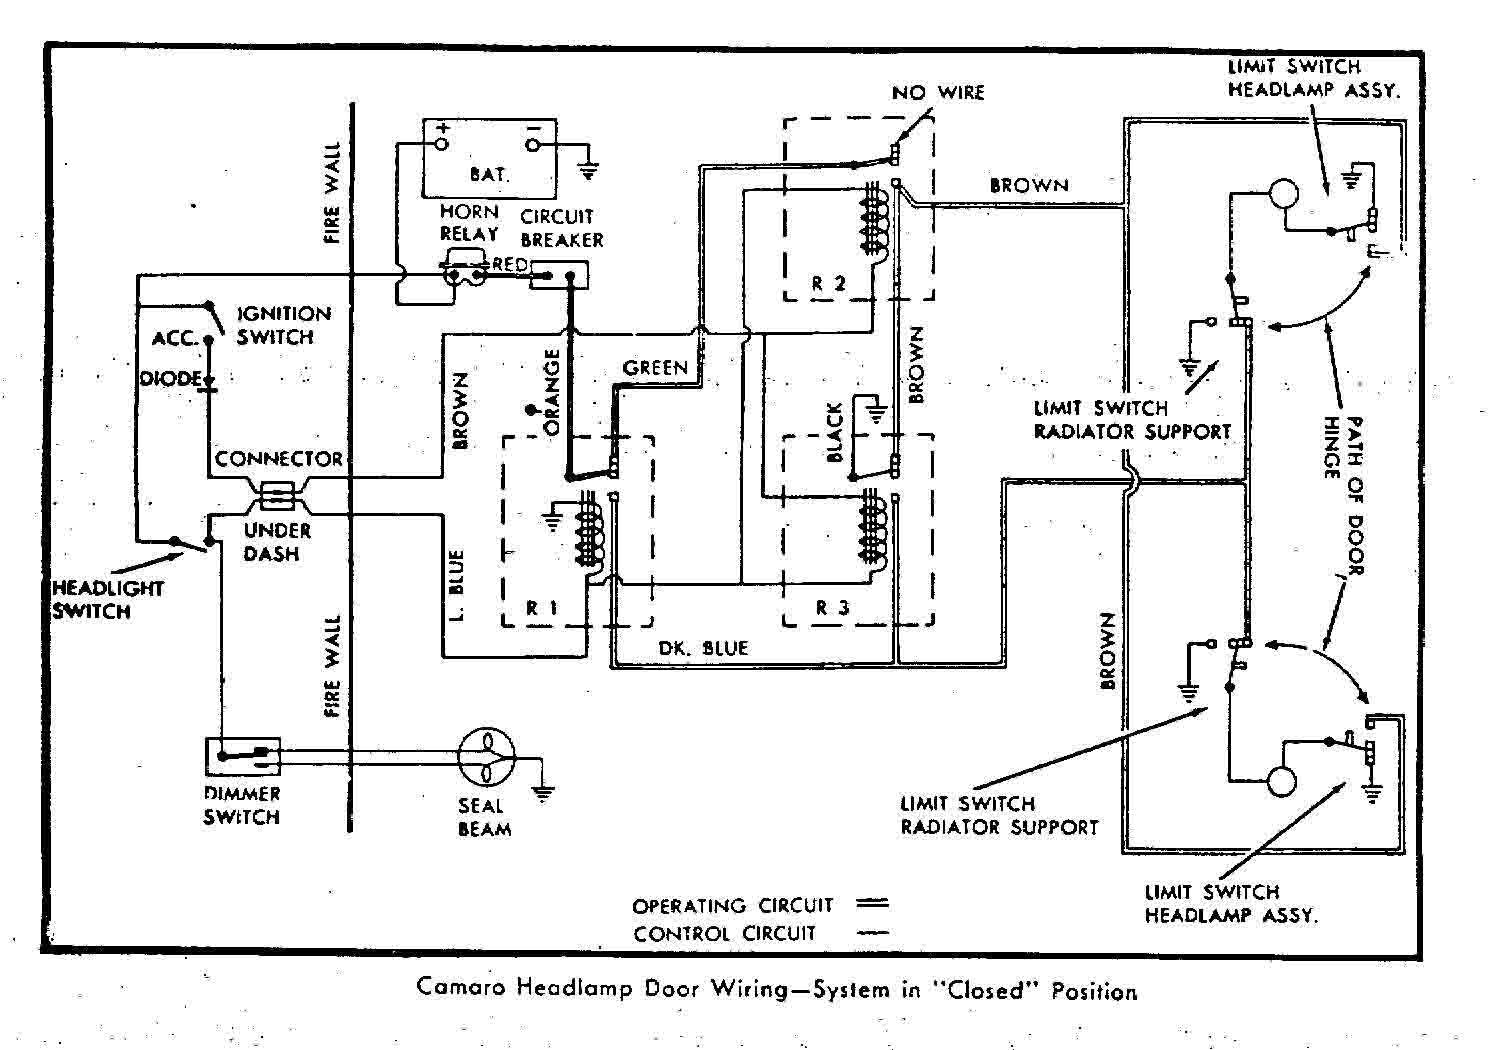 hight resolution of 67 camaro fuse box diagram trusted wiring diagrams rh chicagoitalianrestaurants com 1997 camaro 1997 chevy camaro